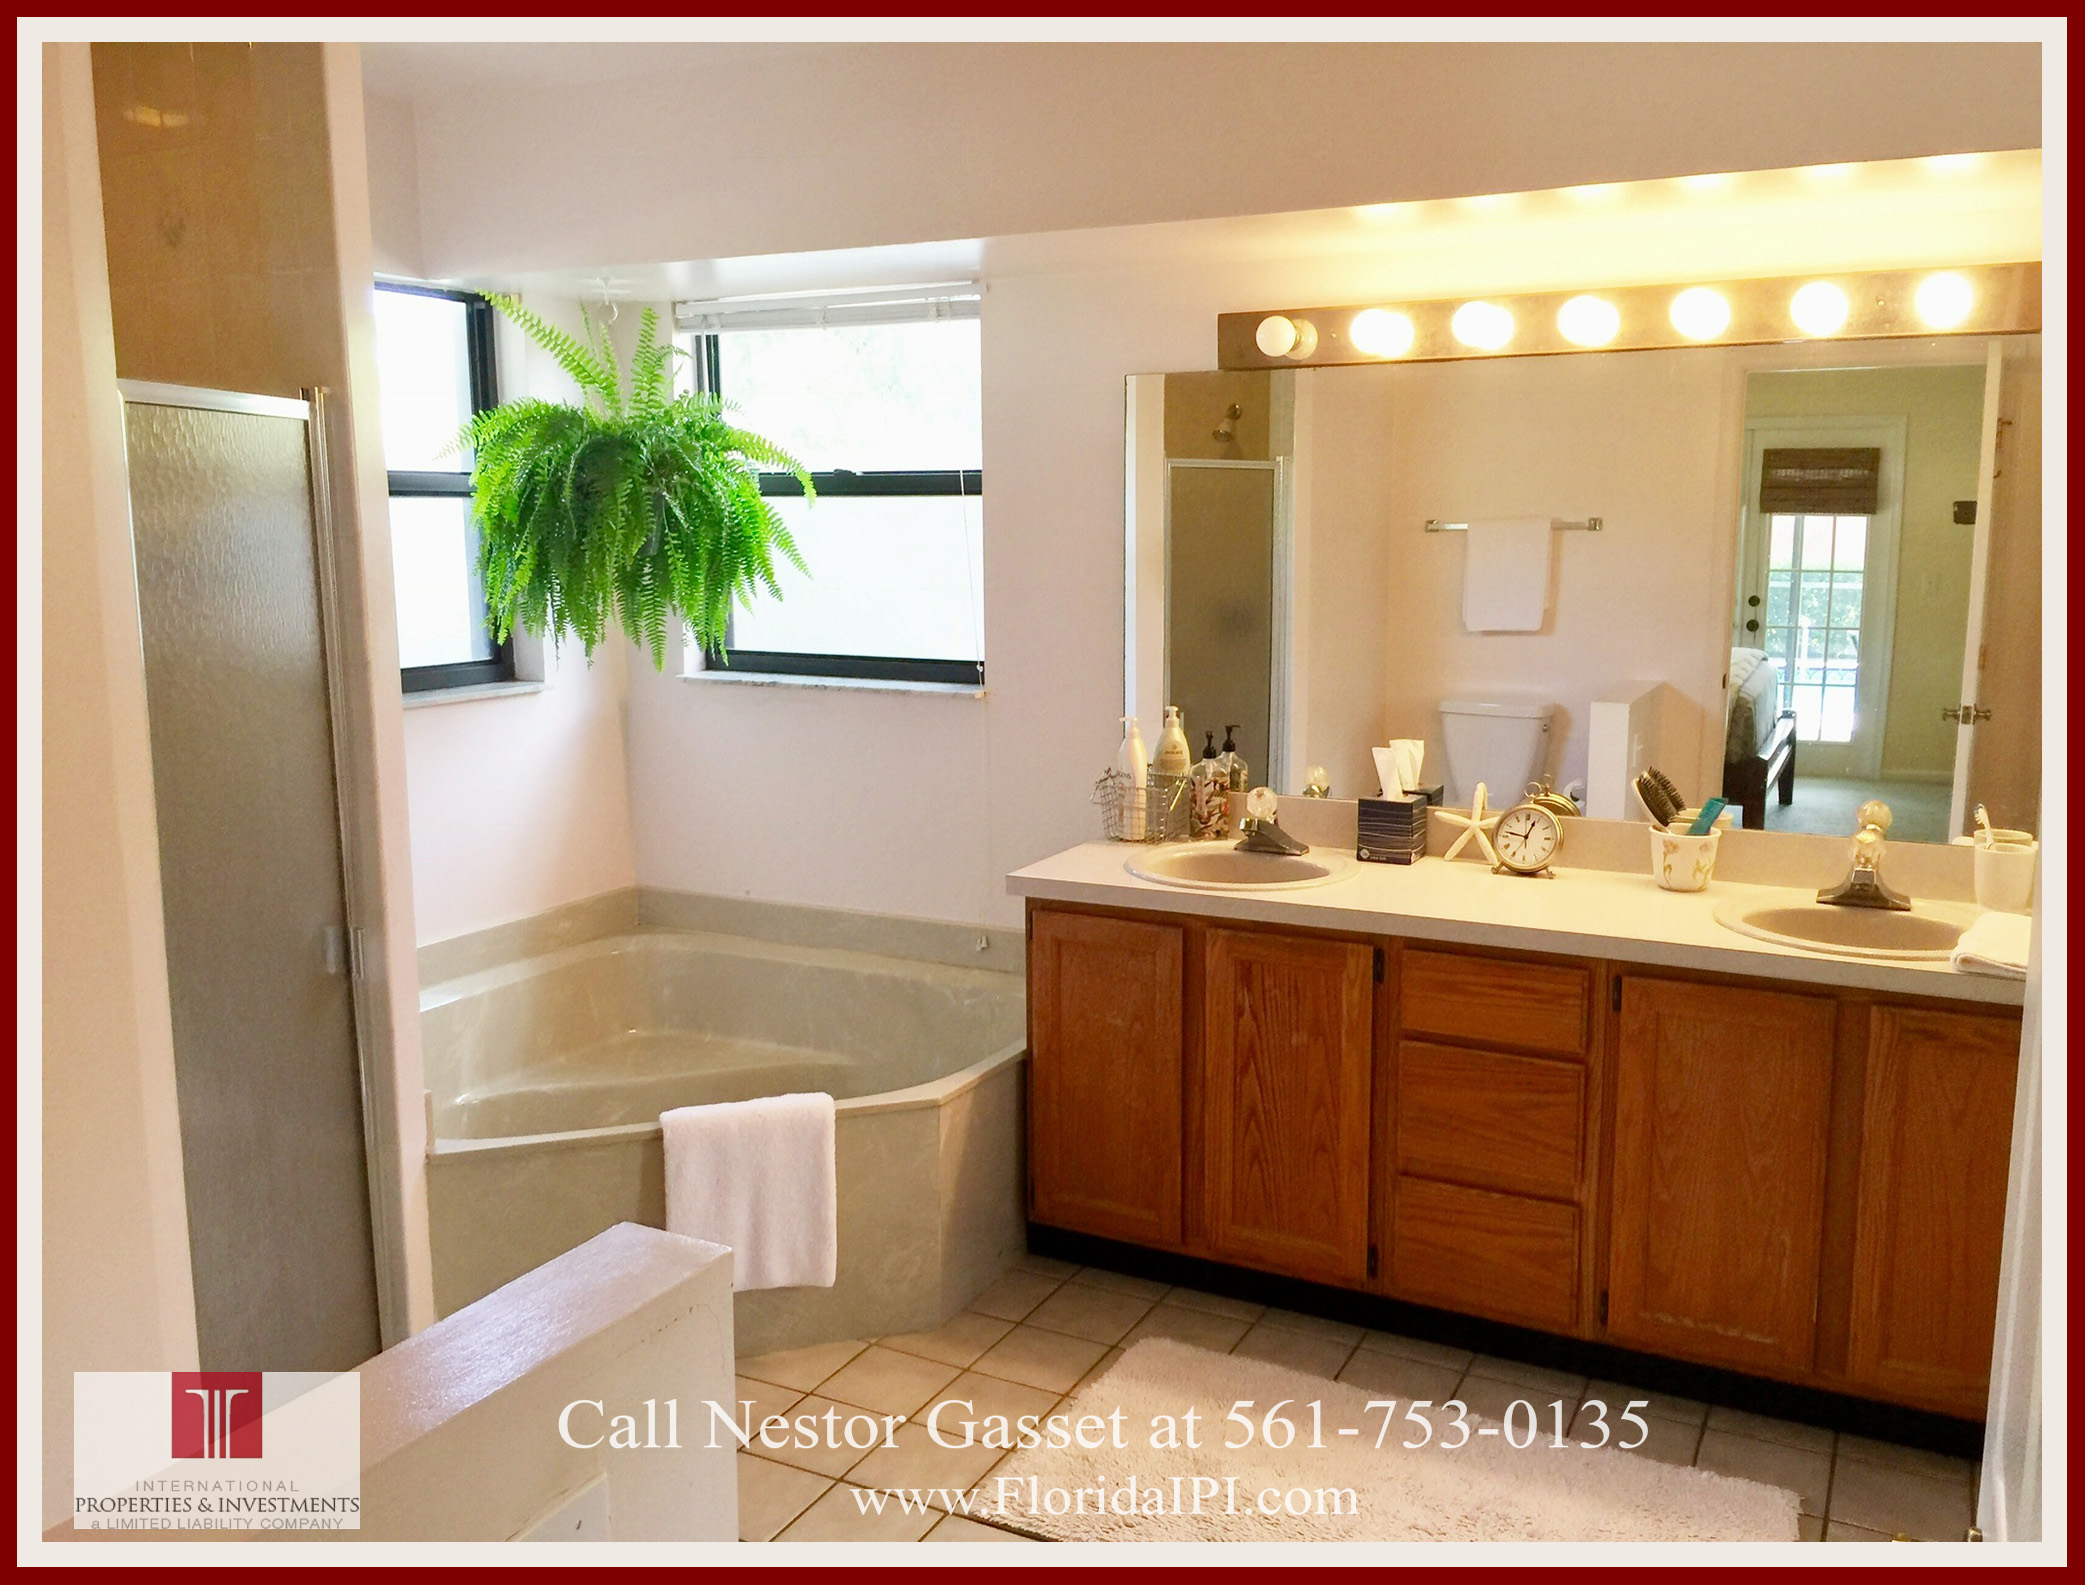 Wellington FL Sugar Pond Manor Home For Sale - The master bathroom of the home features a bath tub, separate shower, and a vanity counter top with his and her sinks.